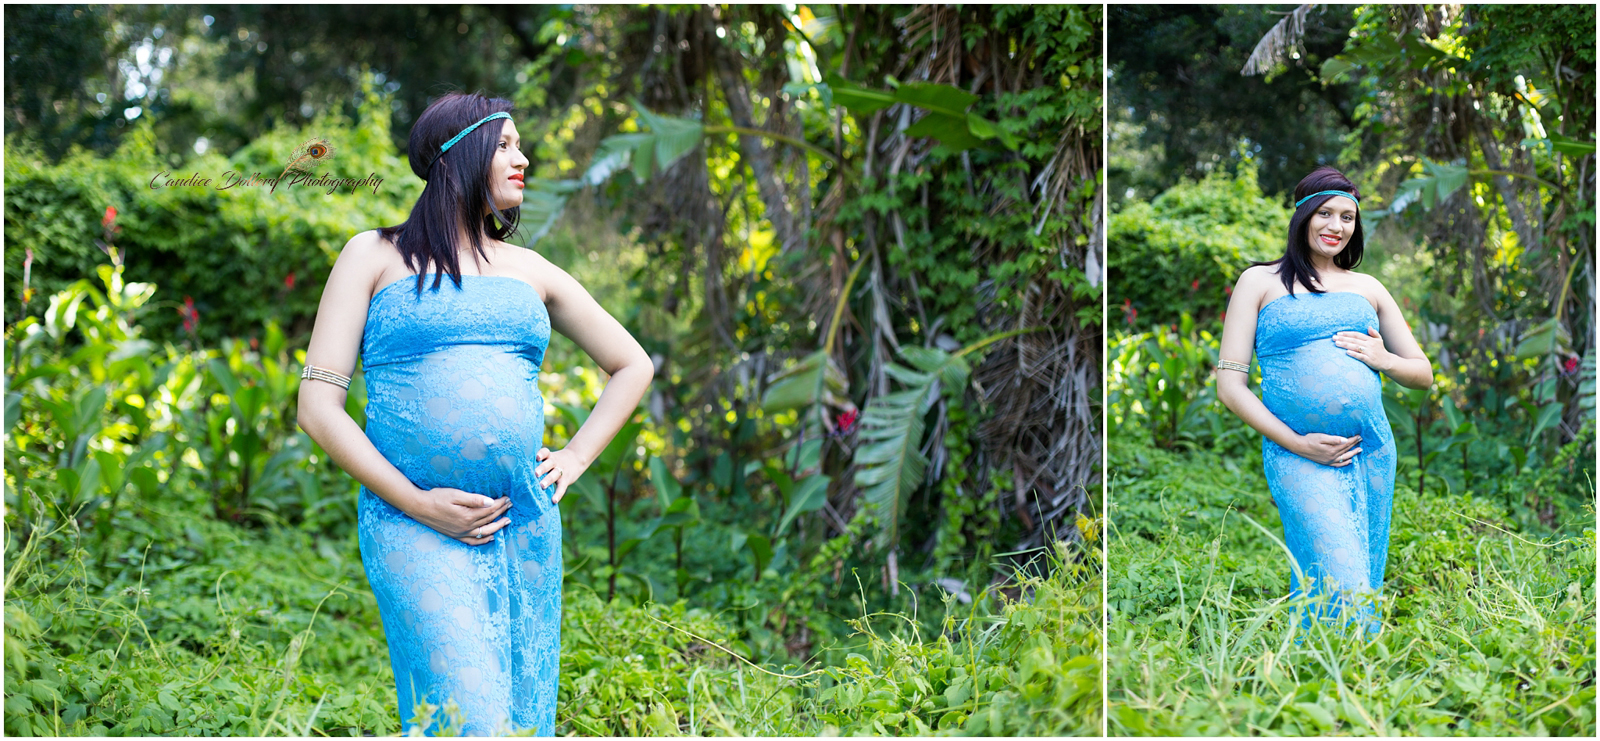 loris-pregnancy-candice-dollery-photography_2466